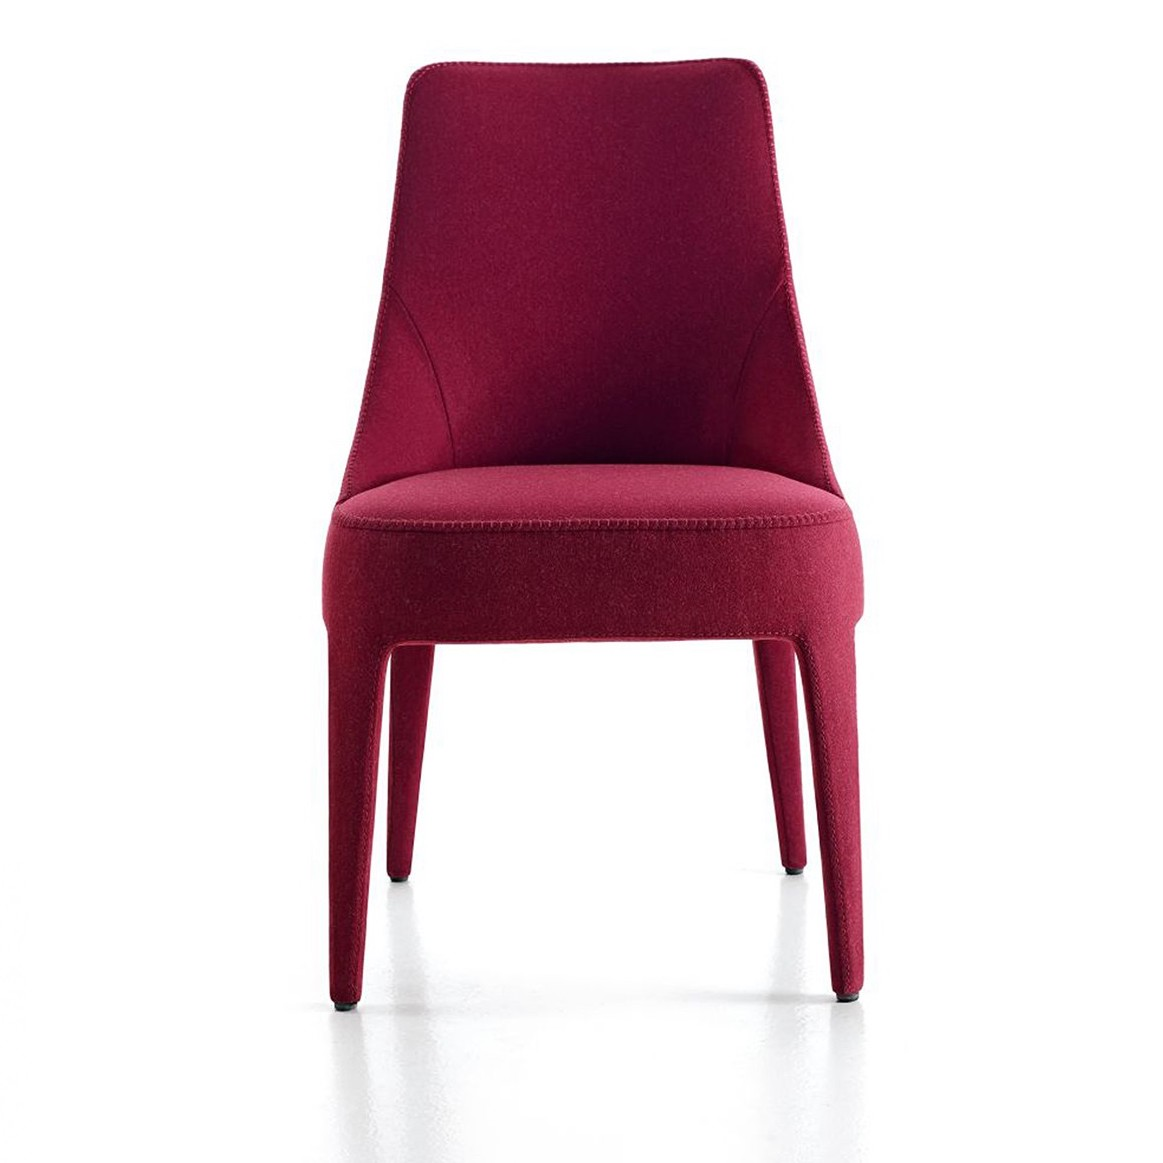 07_ Maxalto Febo chair Apta collection designer ANtonio Citterio.jpg